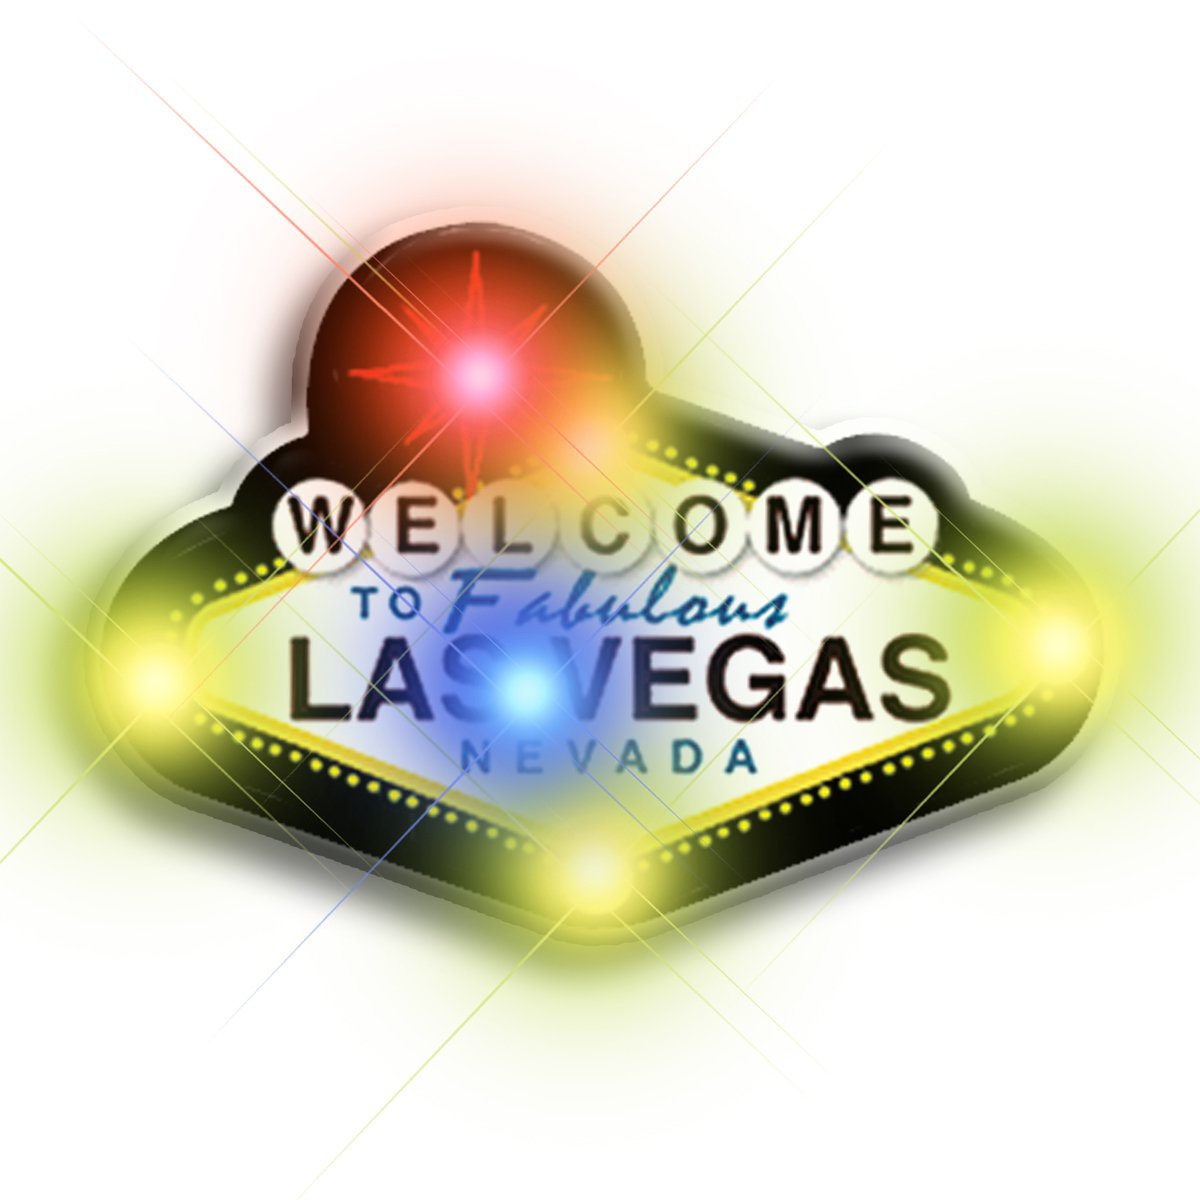 Welcome to Vegas Flashing Body Light Lapel Pins All Body Lights and Blinkees